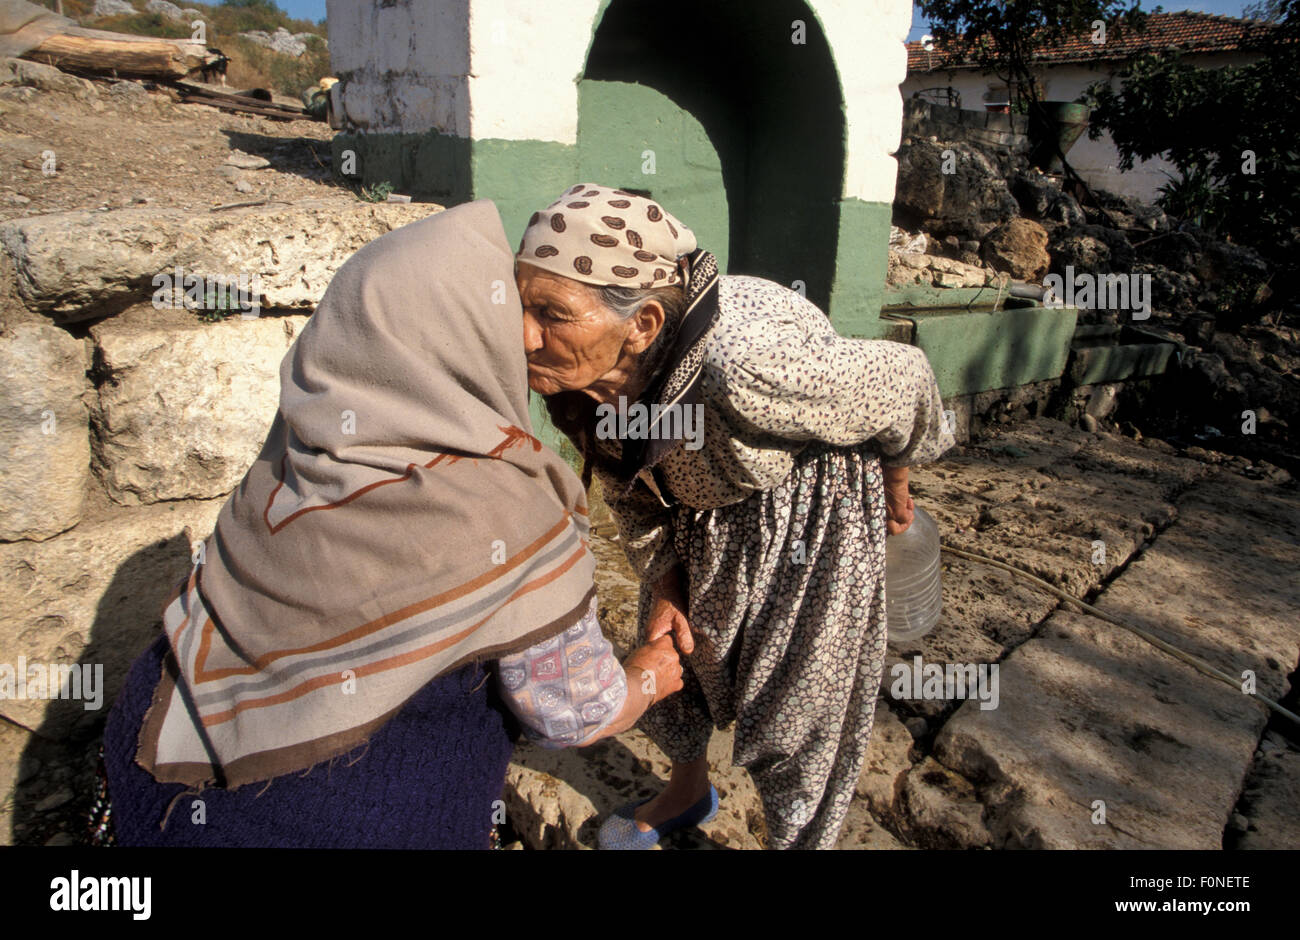 Elderly Turkish Woman Greeting Another Woman In Turkey Stock Photo